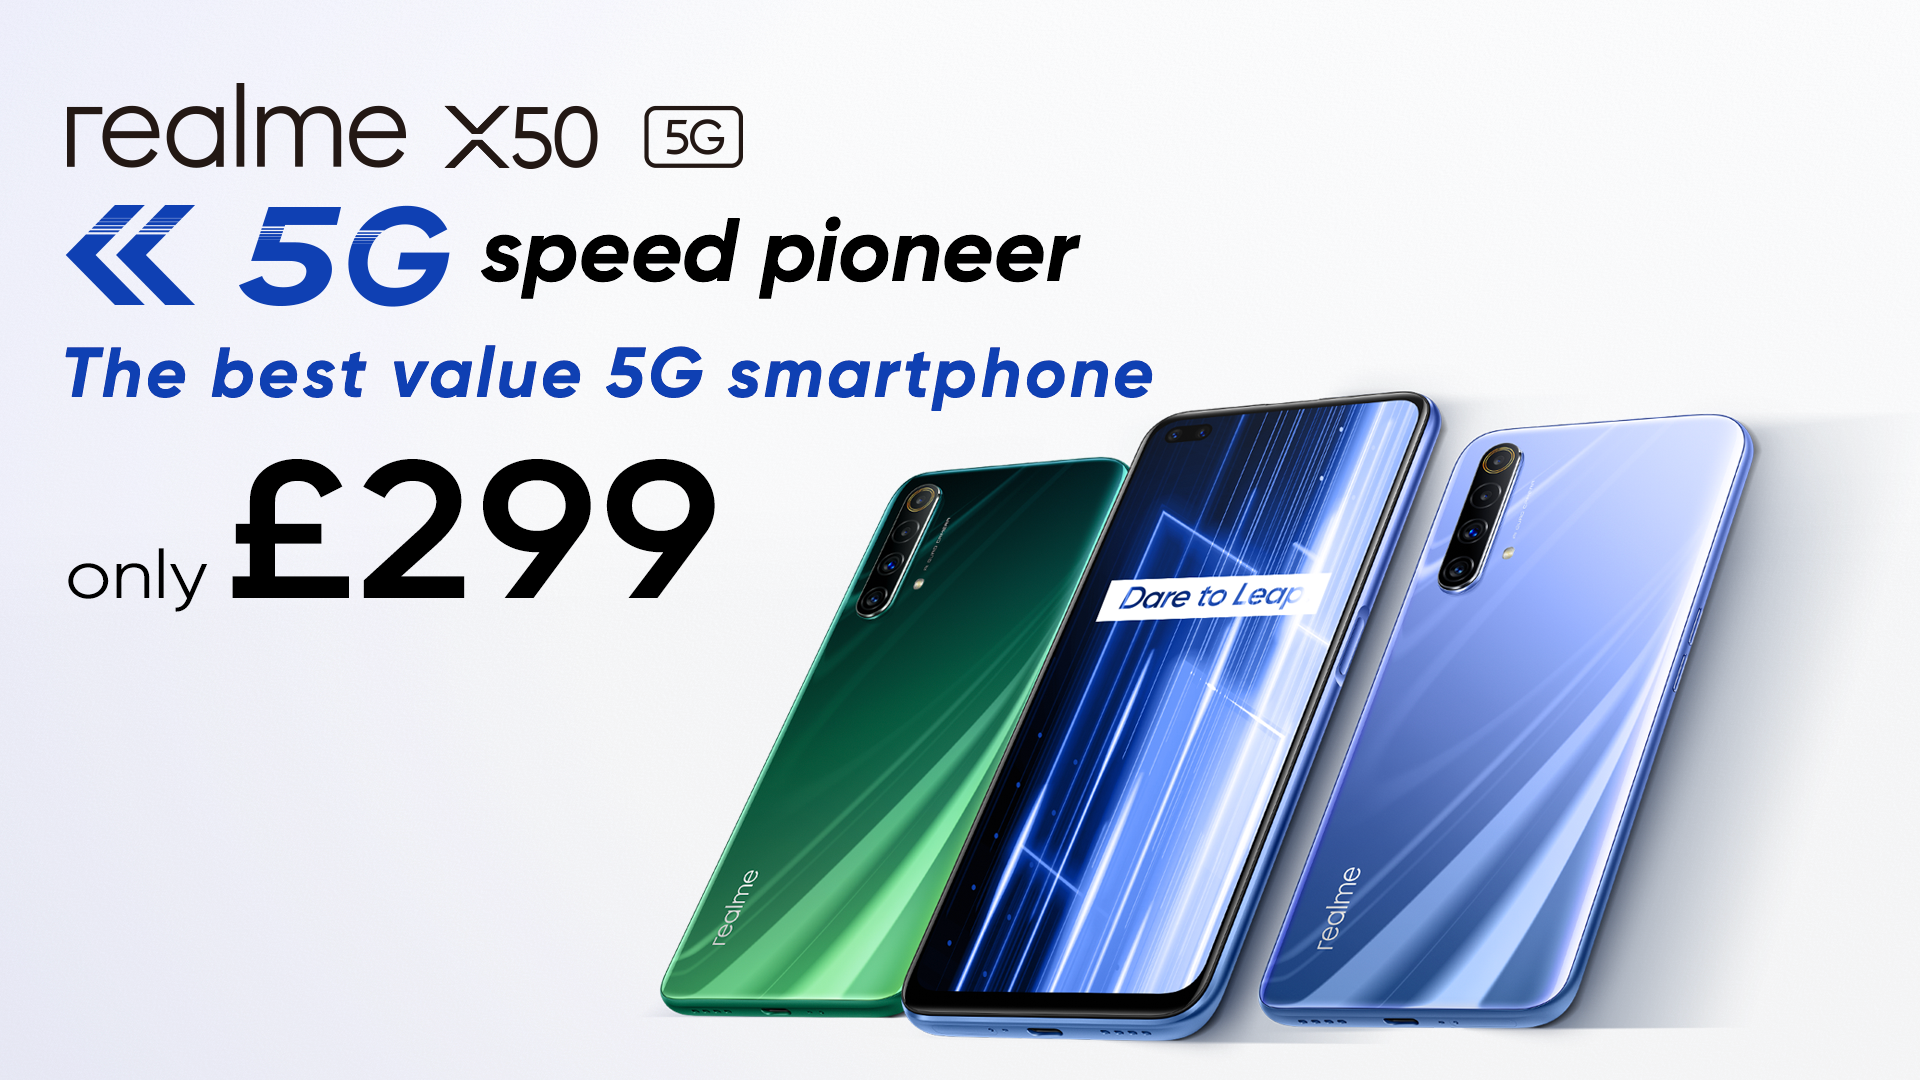 The Realme X50 5G is official - comes with 120Hz display, Snapdragon 765G SoC, and 30W charging for just €349/£299 - TalkAndroid.com